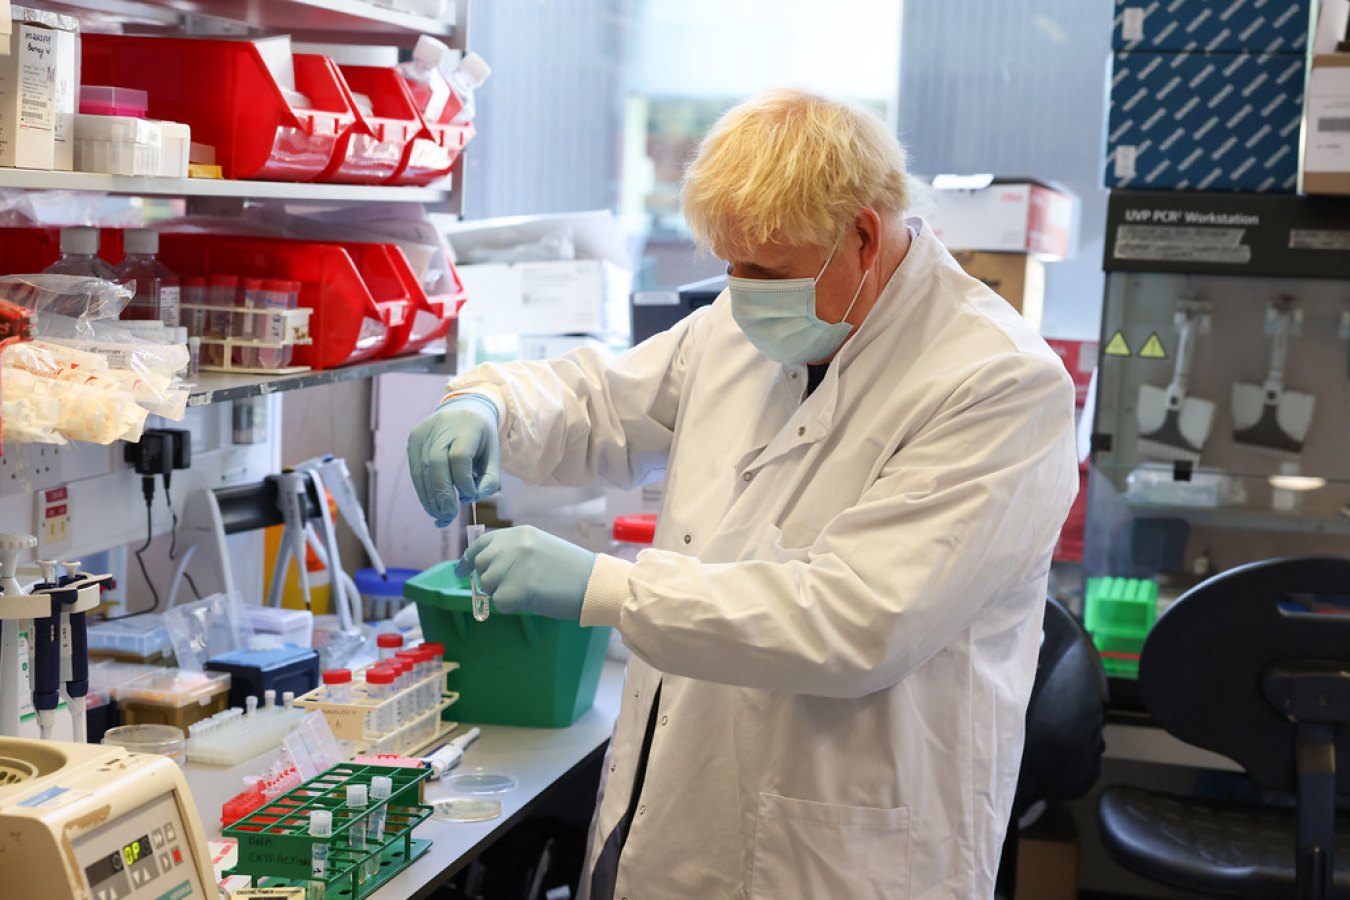 Boris Johnson visits the Jenner Institute, Oxford where coronavirus research is carried out 18 September 2020